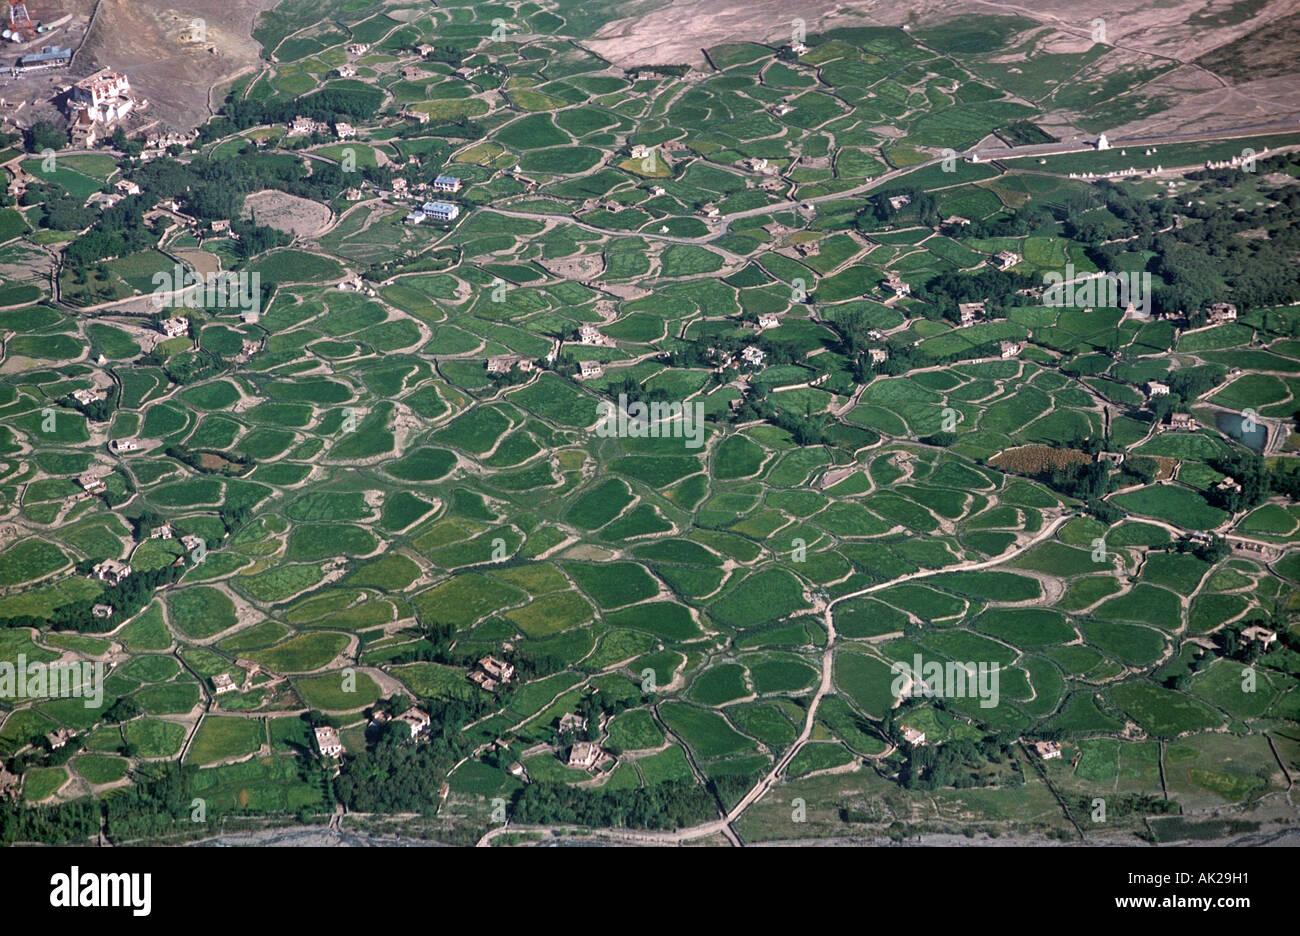 View of lush irrigated fields in the valley beside Stok Palace near Leh Ladakh Northern India viewed from an airliner on the ap - Stock Image